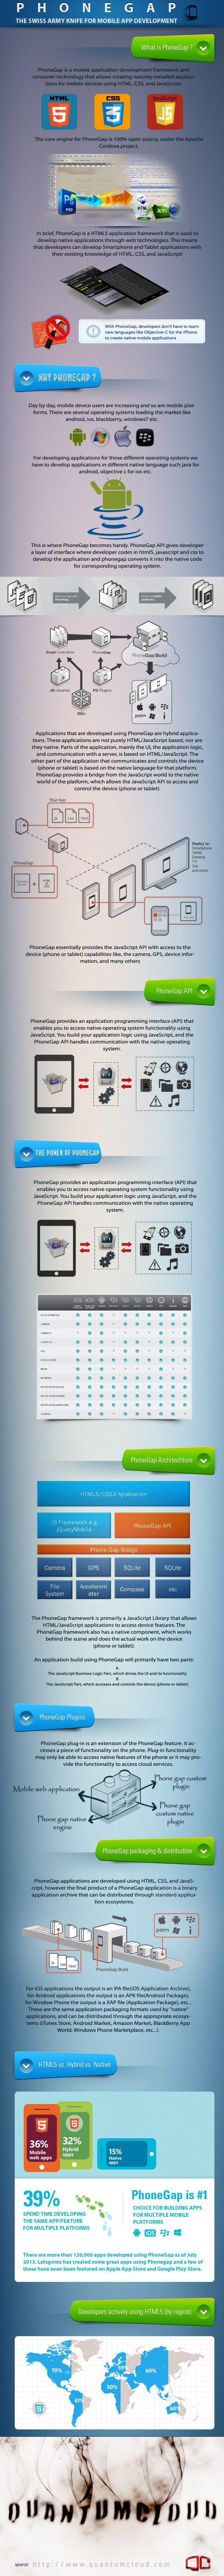 PhoneGap - The Swiss Army Knife of Mobile Application Development InfoGraphic